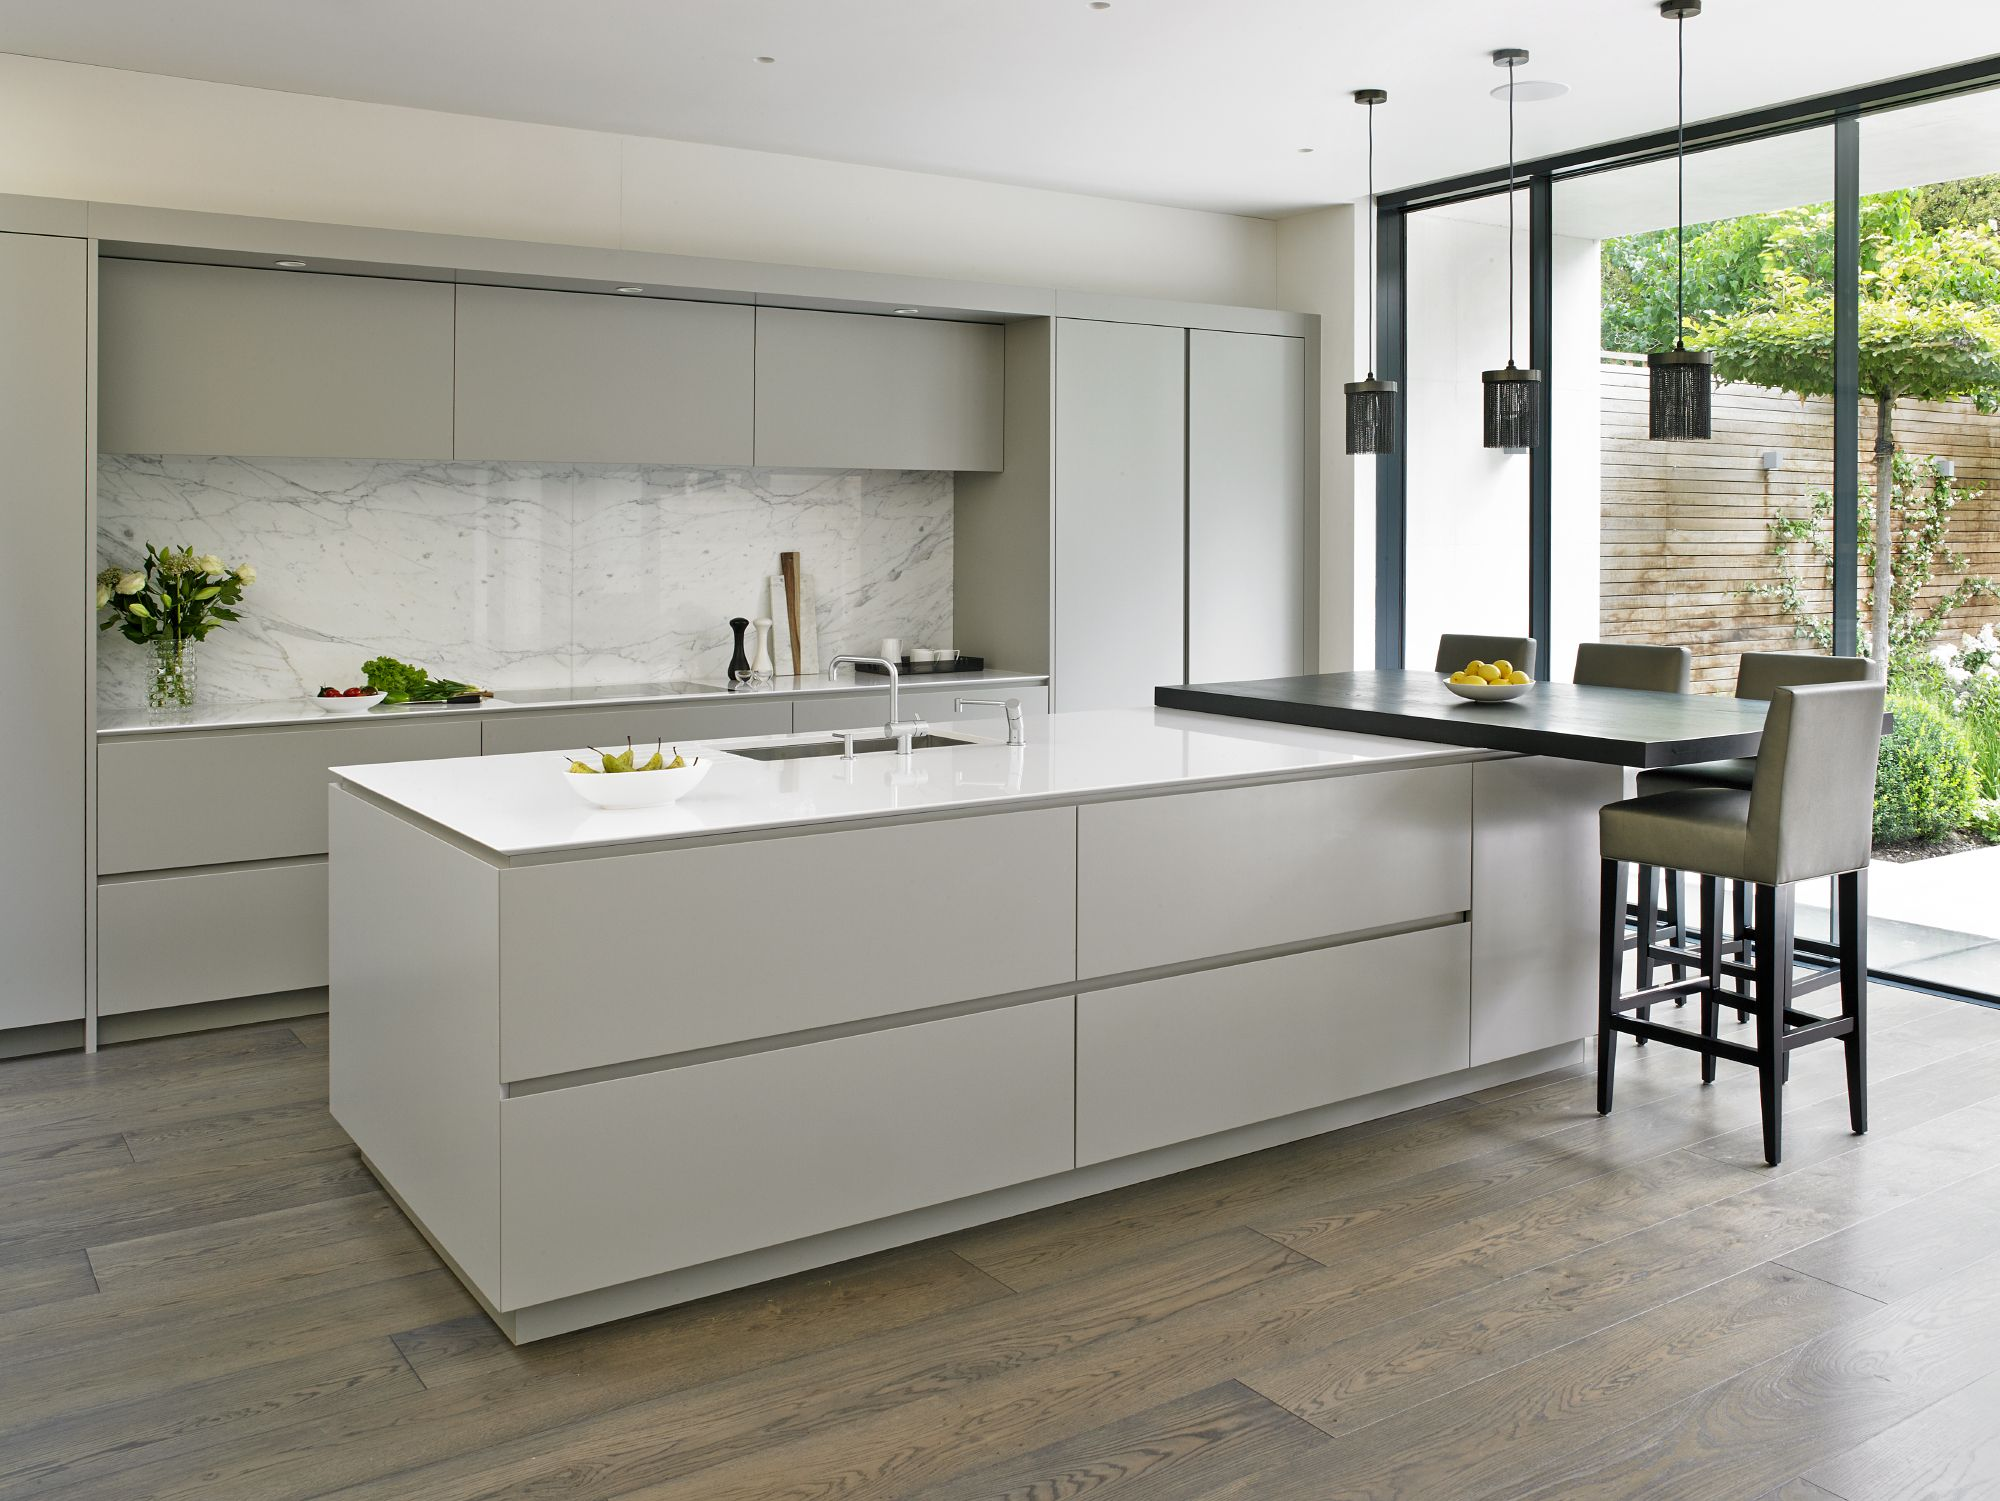 Wandsworth Family Kitchen - Bespoke Kitchens, SW London | Küchen ...